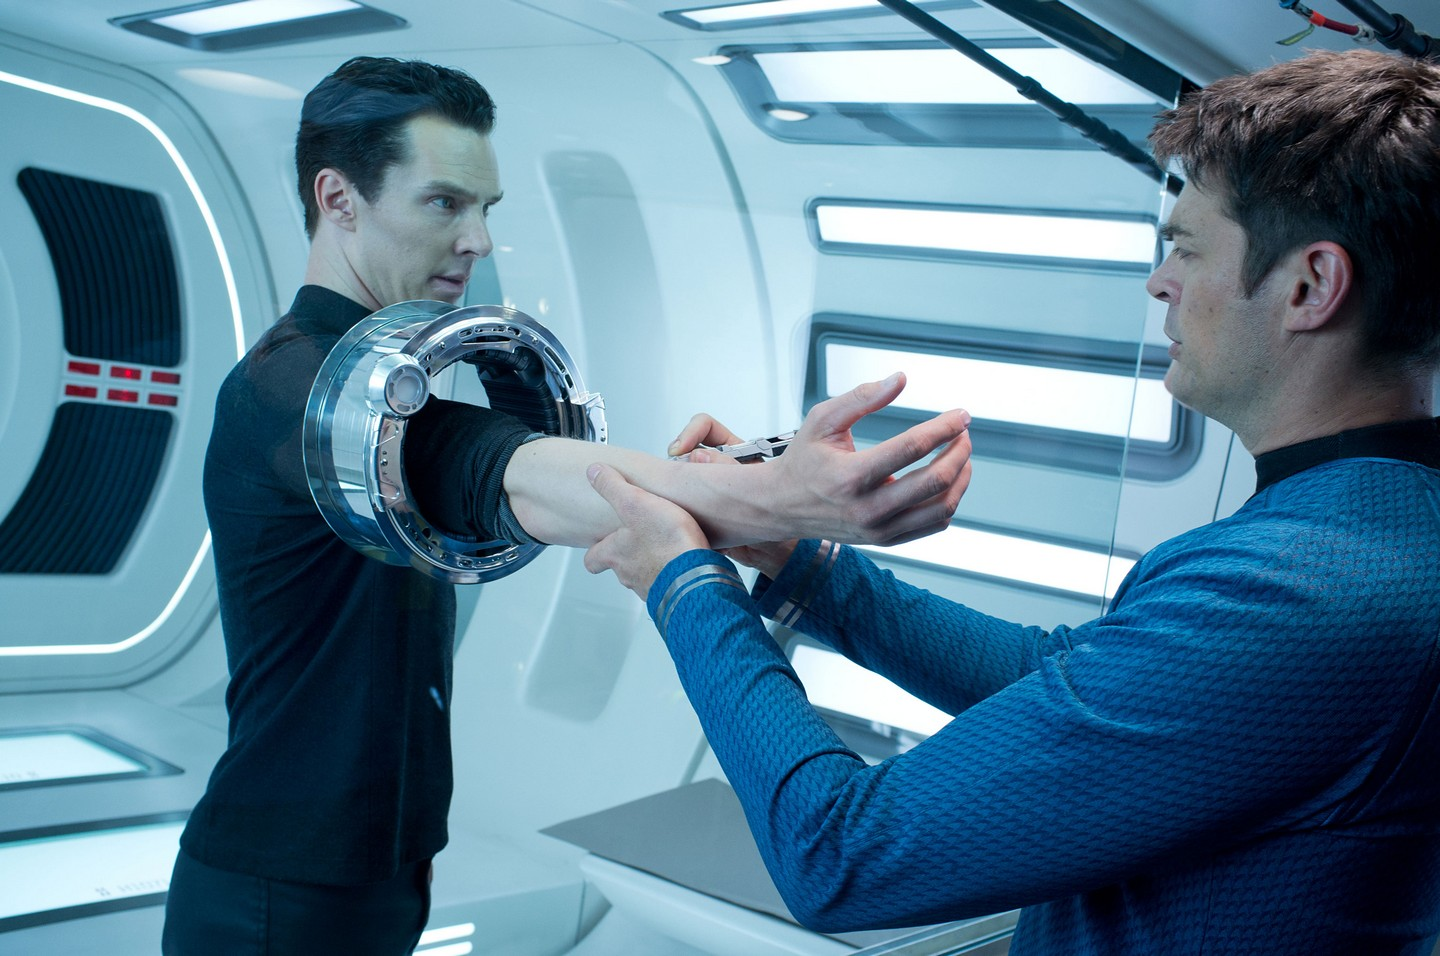 Benedict Cumberbatch as John Harrison and Karl Urban as Doctor McCoy in Star Trek Into Darkness